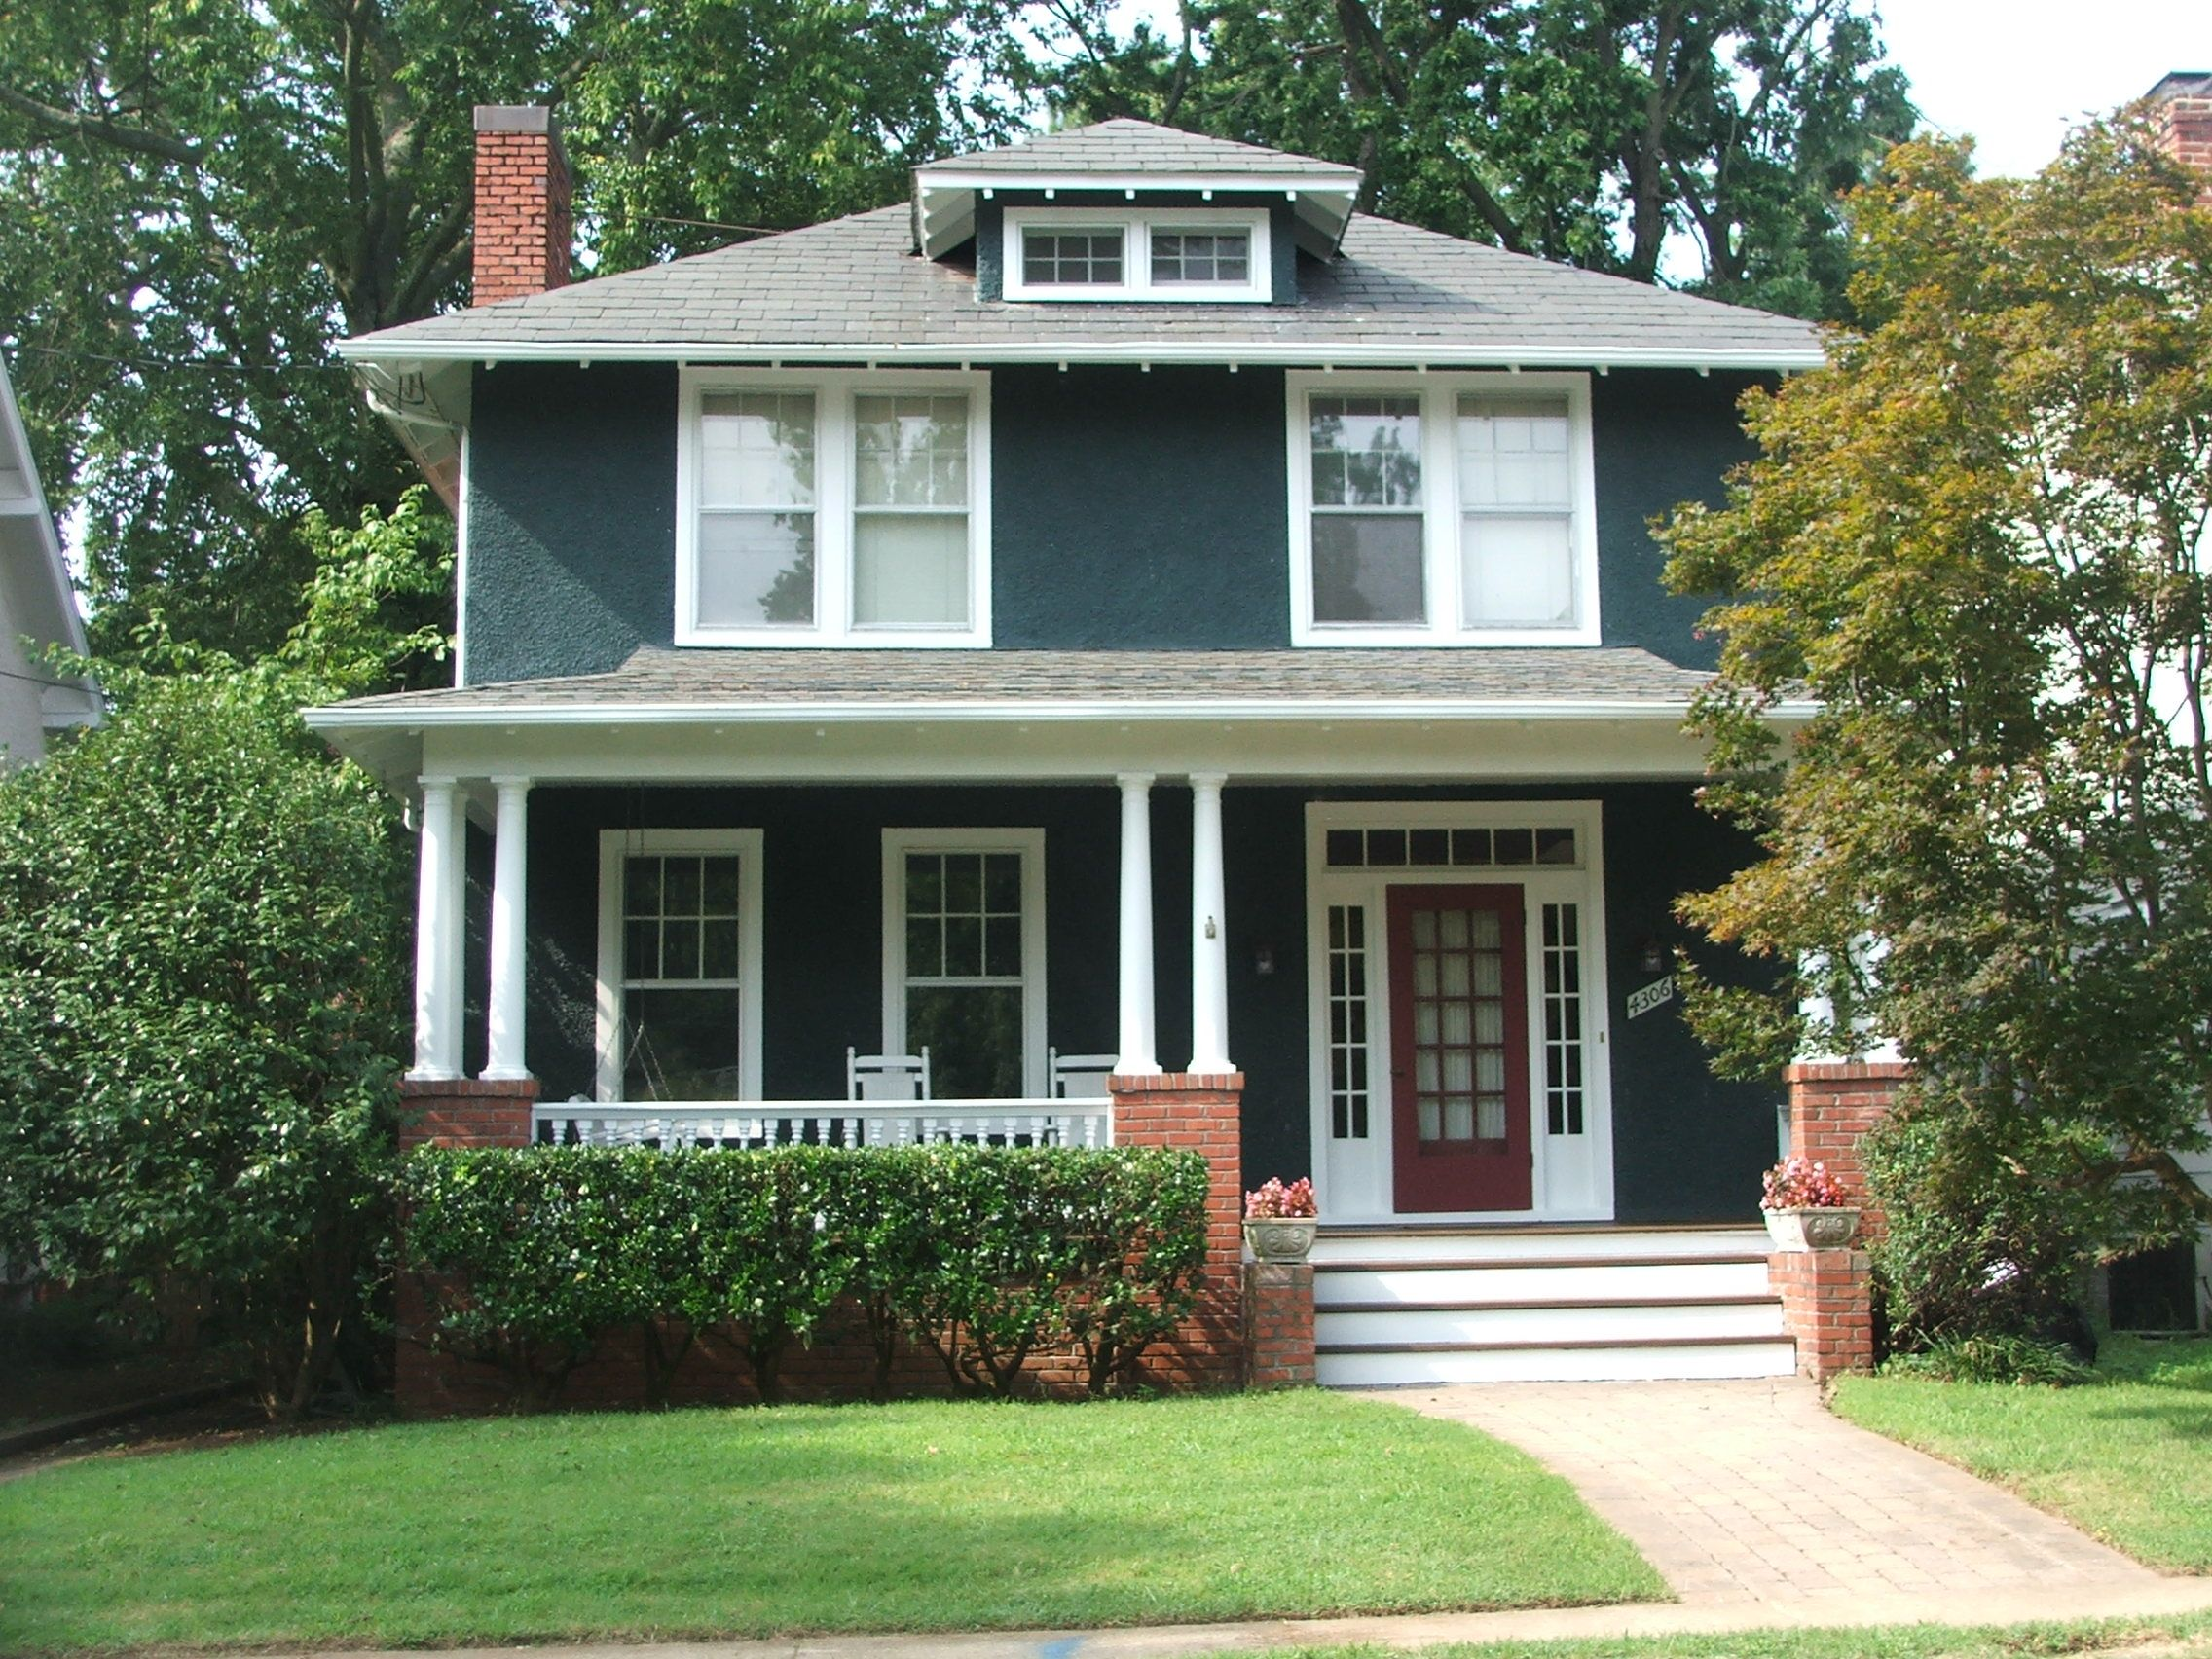 Diy idea for old suitcase american houses front porches for Architectural styles of american homes